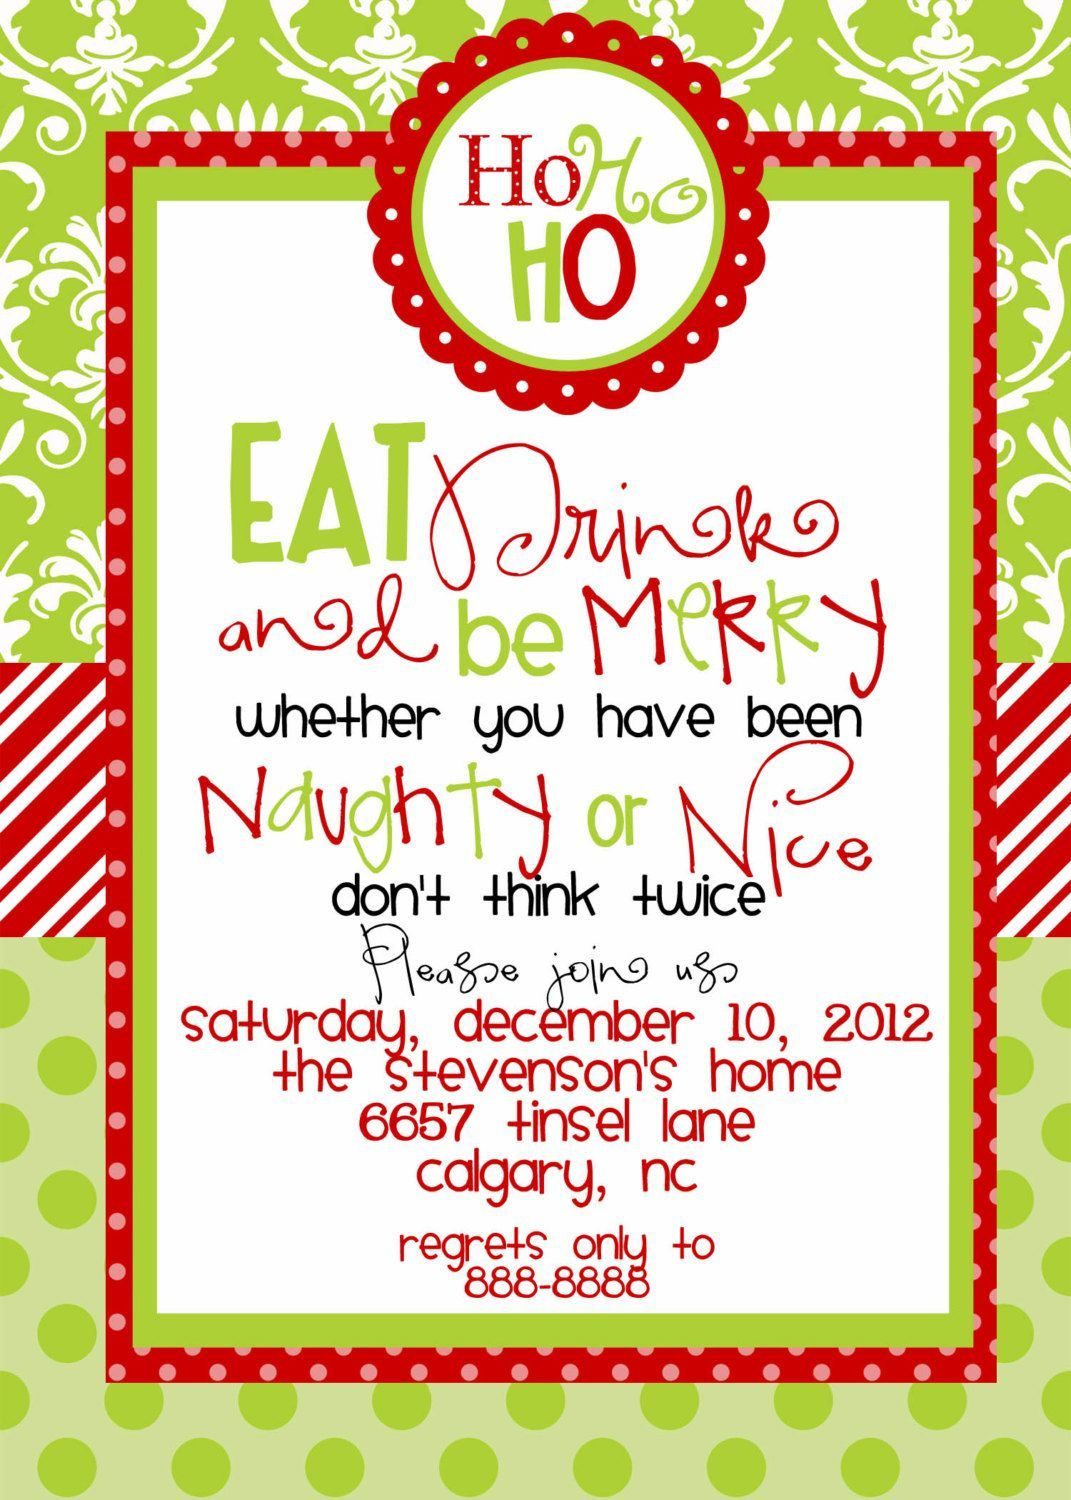 002 Frightening Party Invite Template Free Idea  Ugly Sweater Invitation Word Christma Printable Swimming UkFull